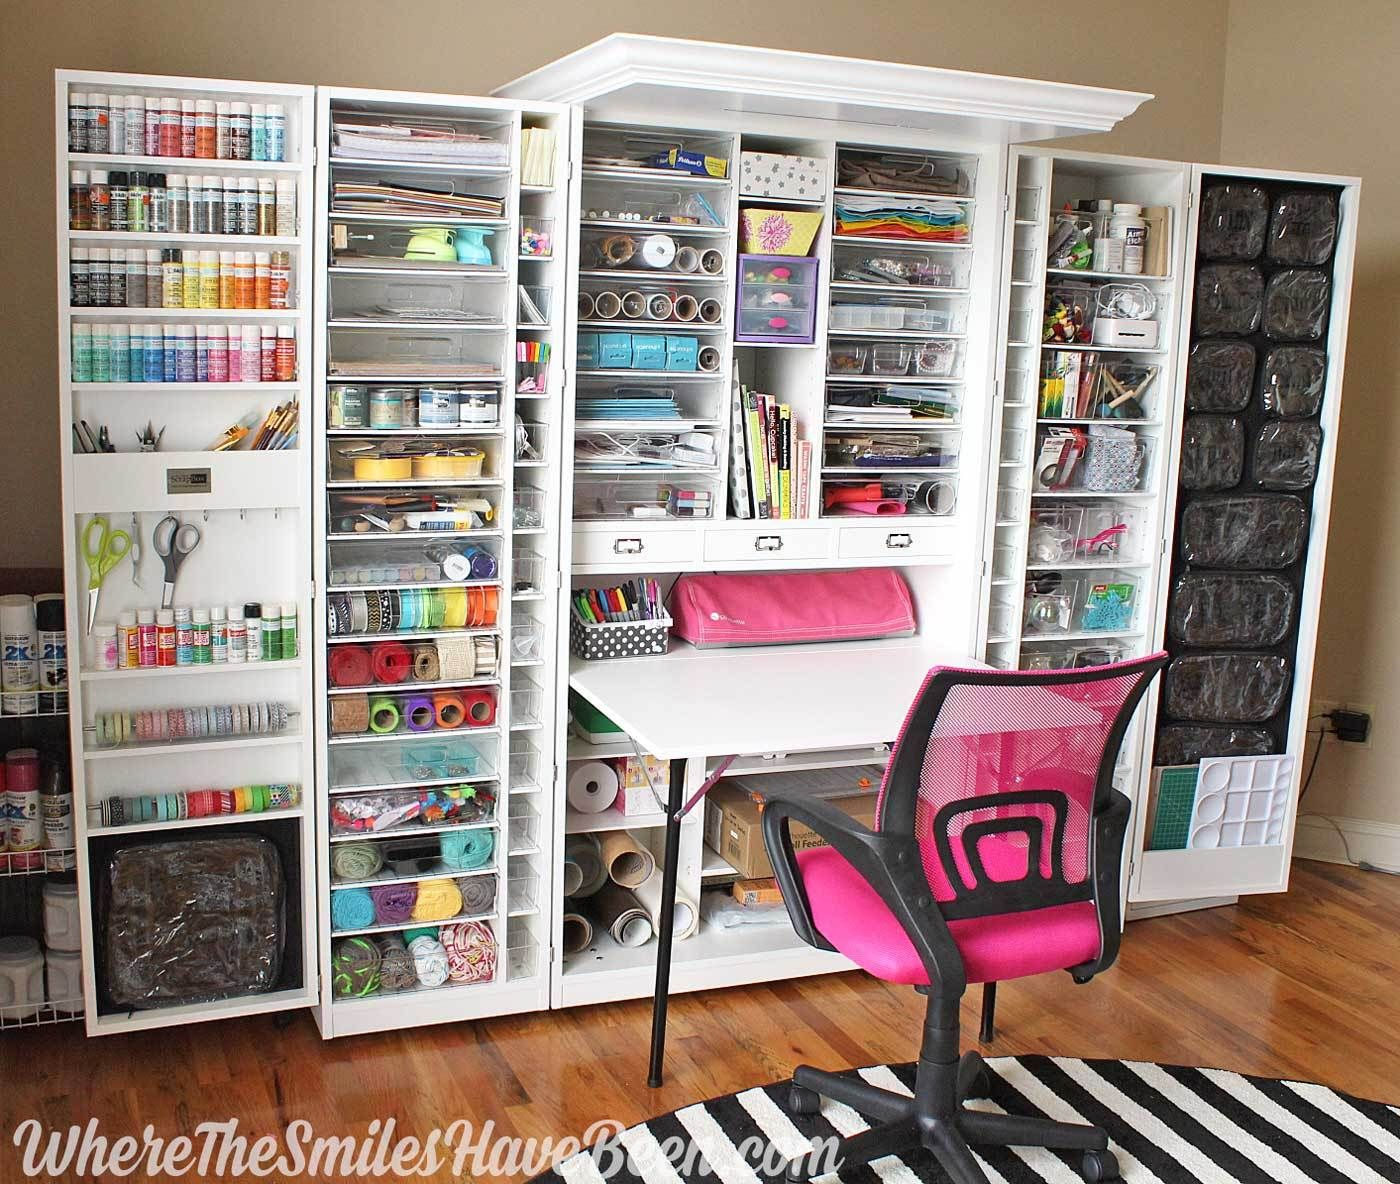 My Workbox 3 0 Review The Good The Bad The Wtf Craft Room Ideas On A Budget Craft Storage Cabinets Craft Storage Ideas For Small Spaces